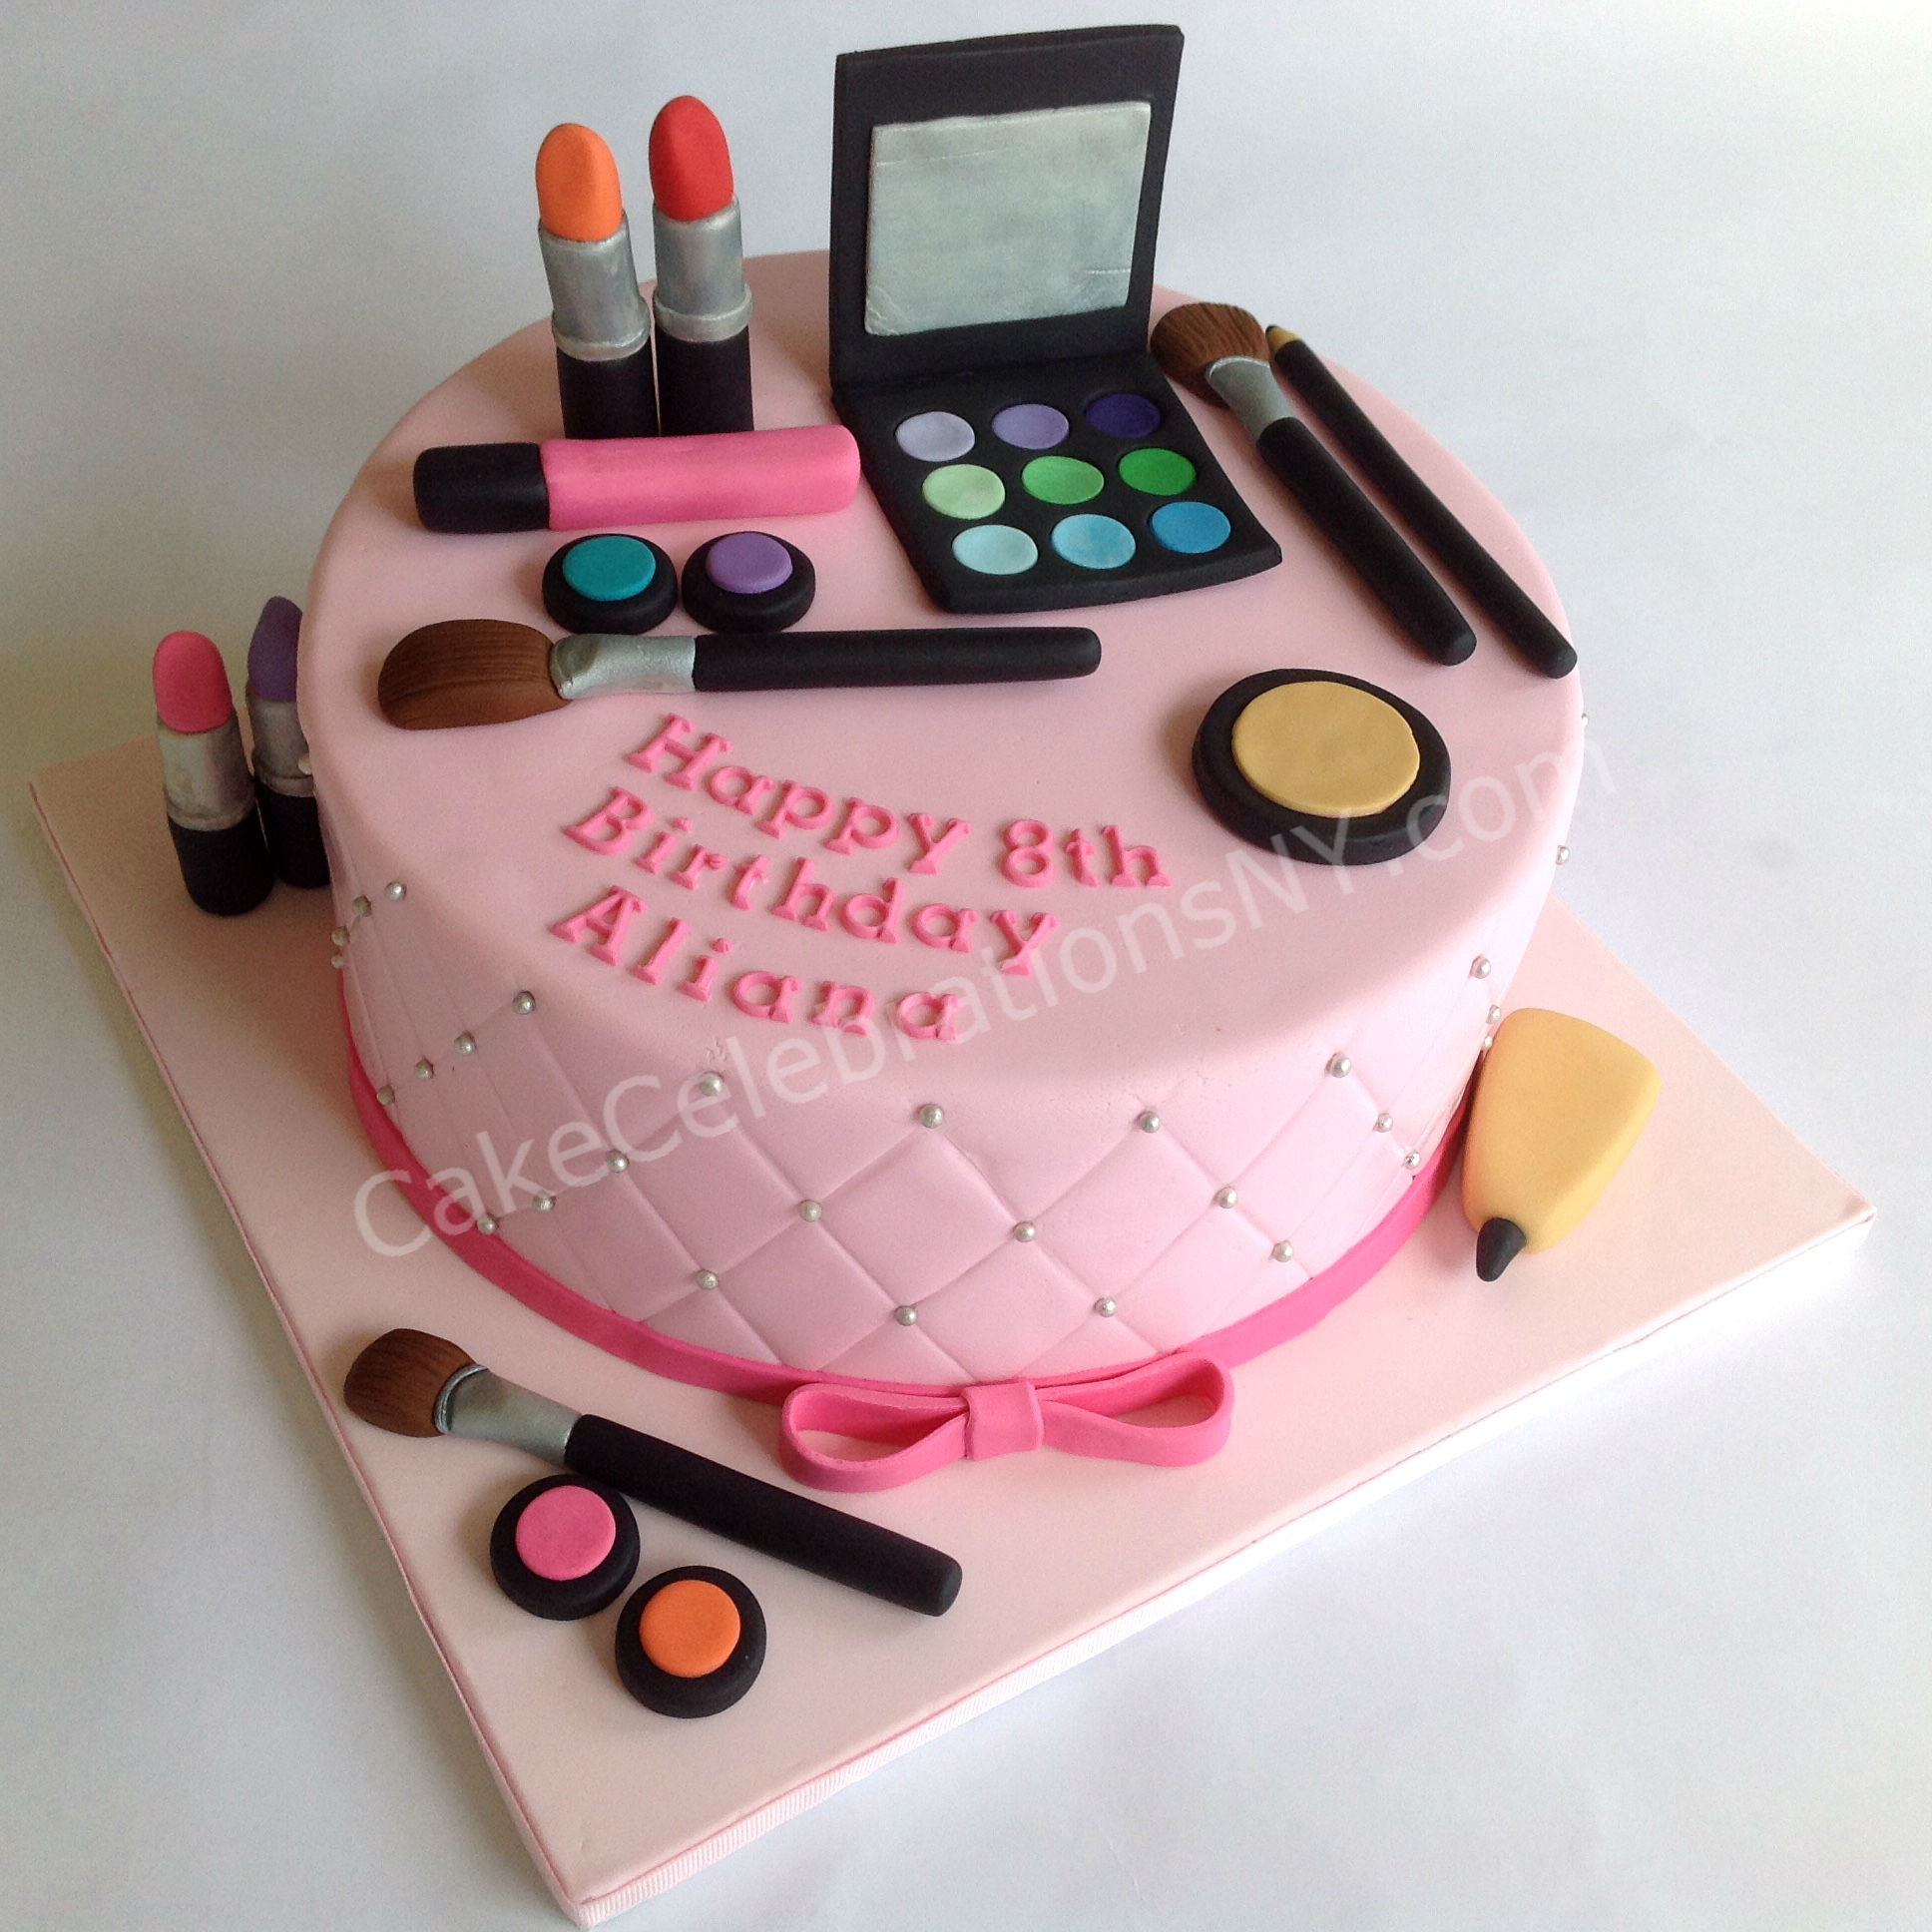 Best ideas about Makeup Birthday Cake . Save or Pin Makeup Birthday Cake Now.